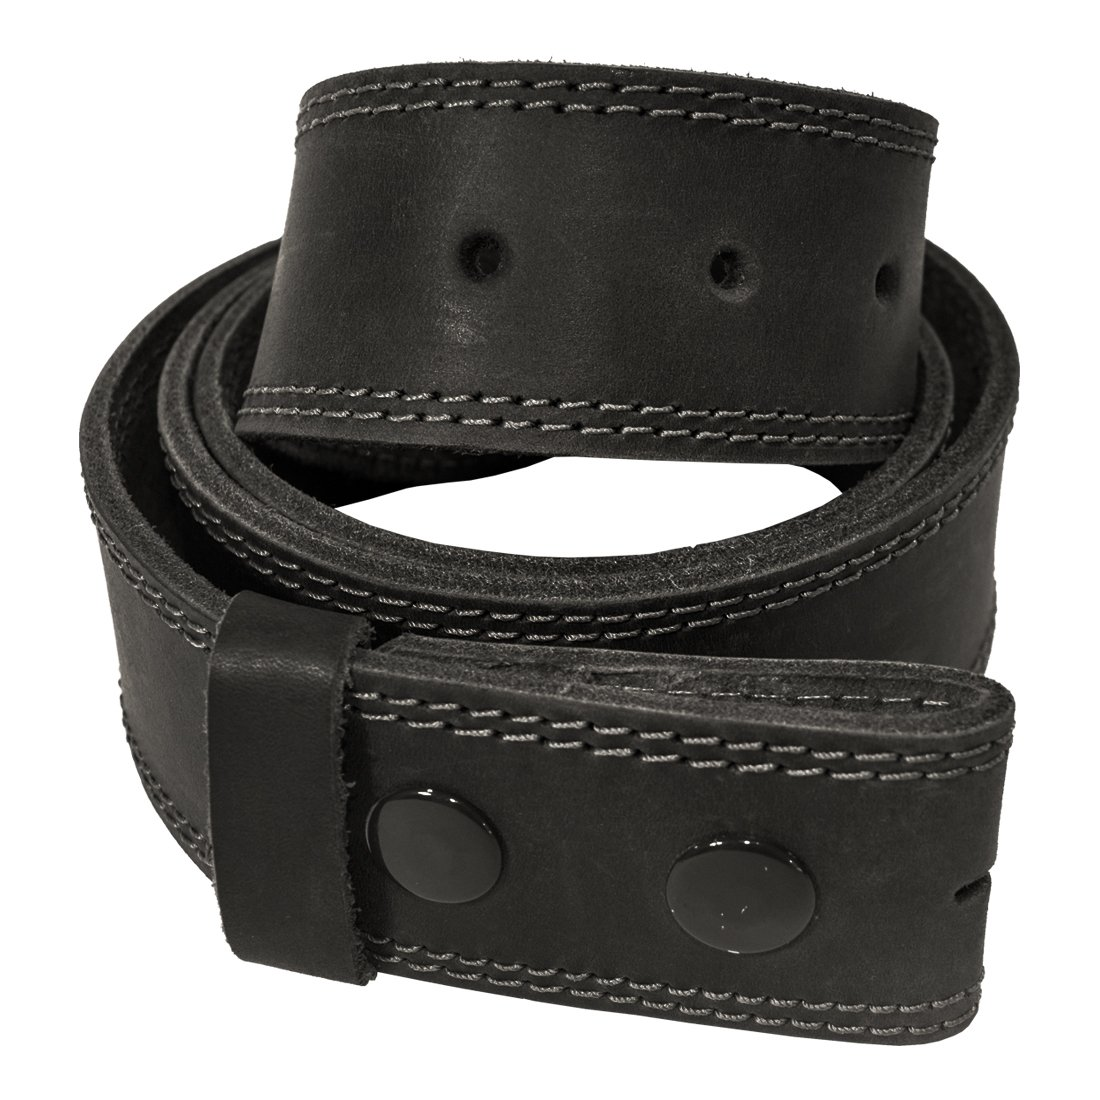 Two Row Stitch Thick Leather Snap On Belt Handmade by Hide & Drink Includes 101 Year Warranty :: Charcoal Black